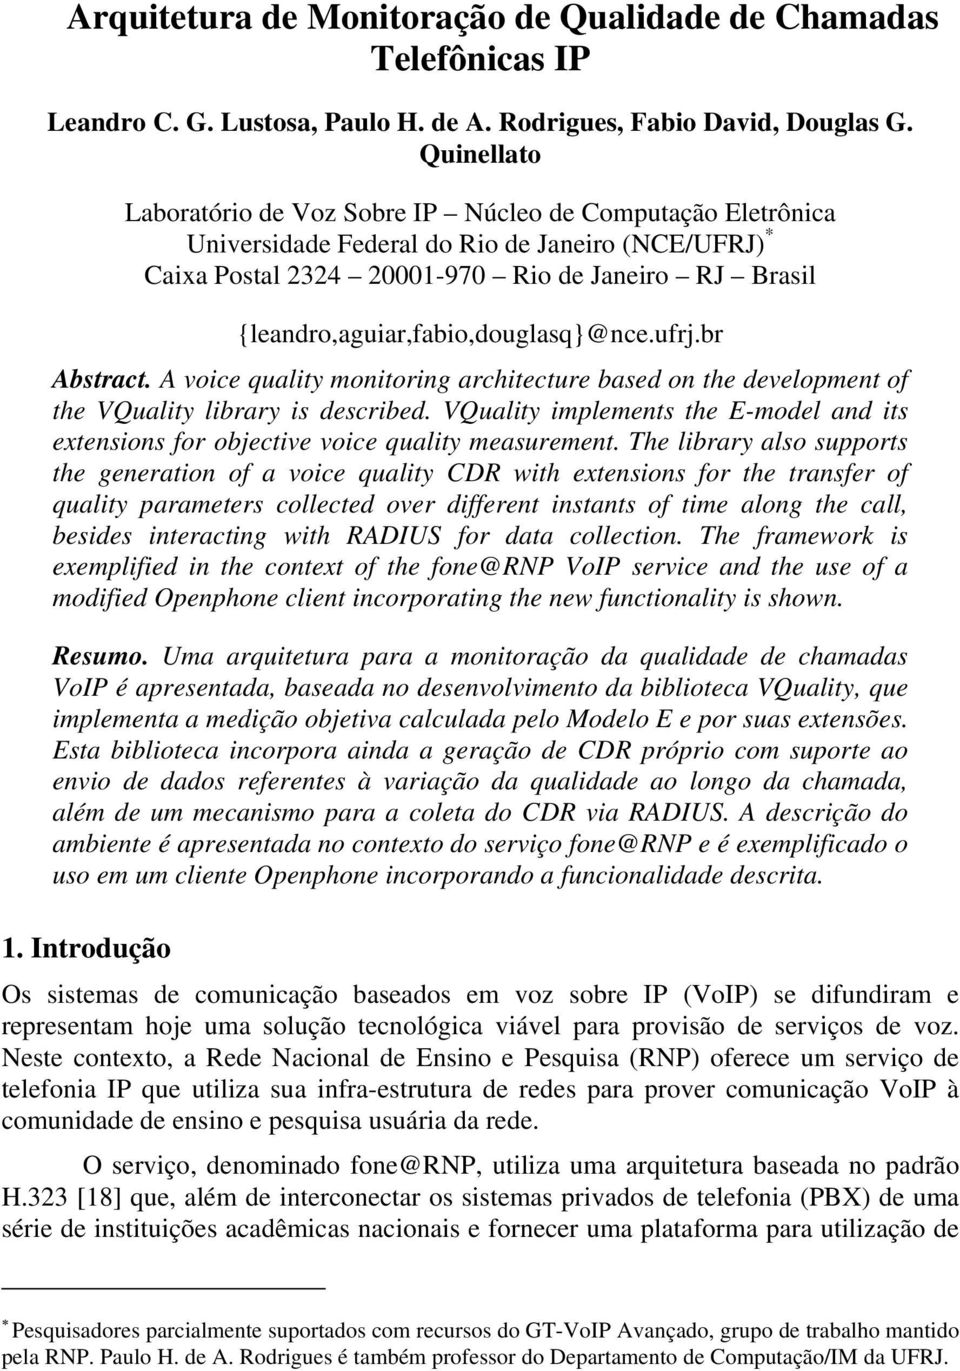 {leandro,aguiar,fabio,douglasq}@nce.ufrj.br Abstract. A voice quality monitoring architecture based on the development of the VQuality library is described.